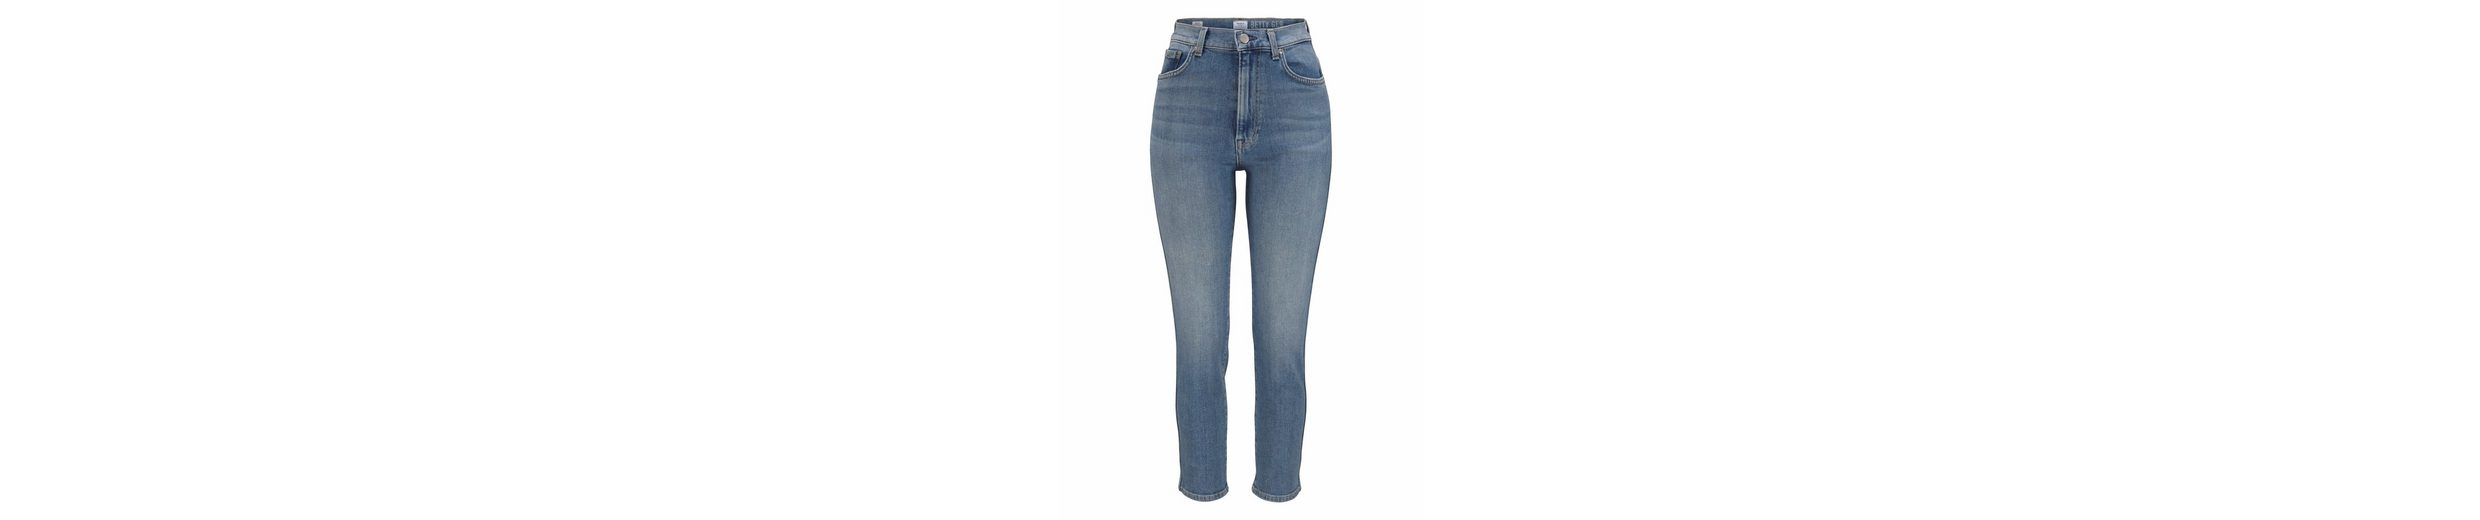 Jeans Mom Kn枚chell盲nge Jeans Jeans in Kn枚chell盲nge Jeans BETTY Jeans Pepe in BETTY Pepe Mom Mom Pepe wC7nqPnAU